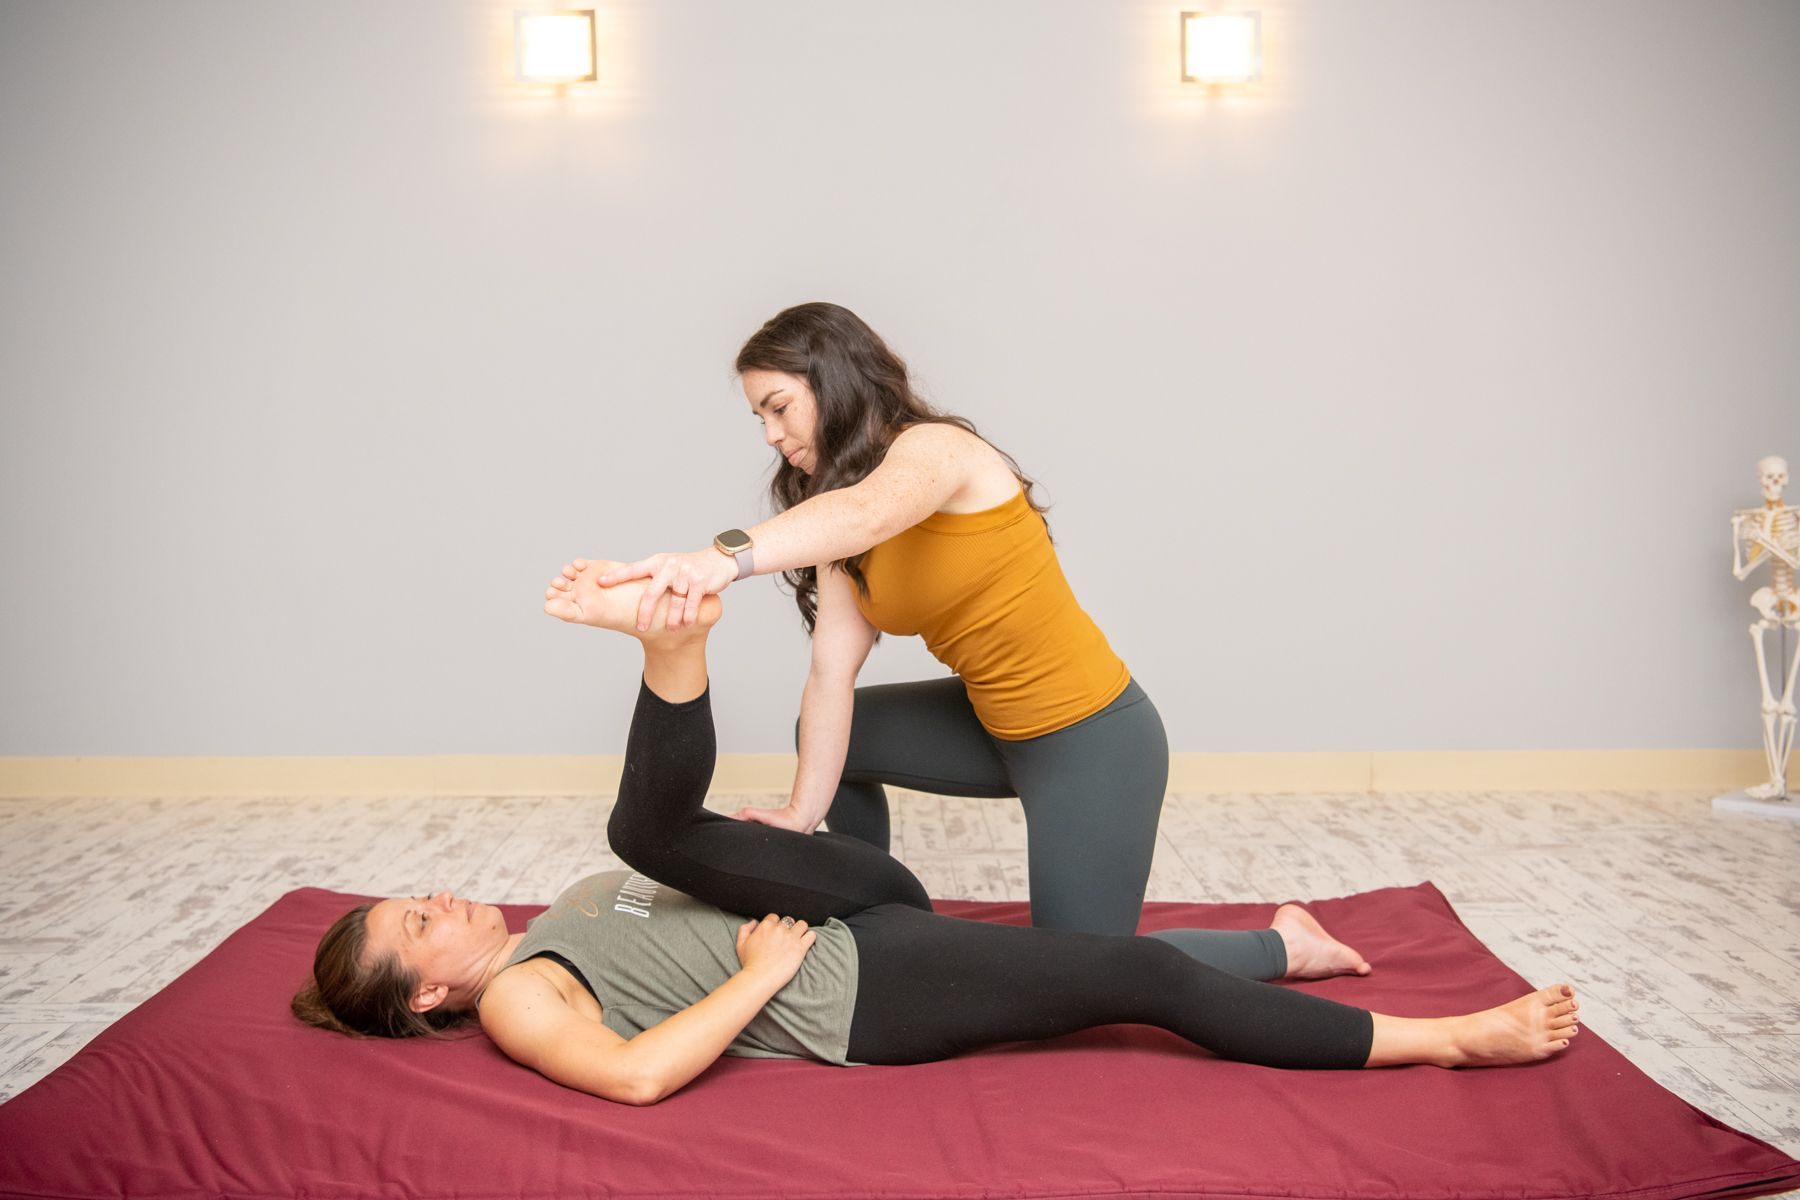 Caitlyn gives a Thai massage at Willow Wellness Center.